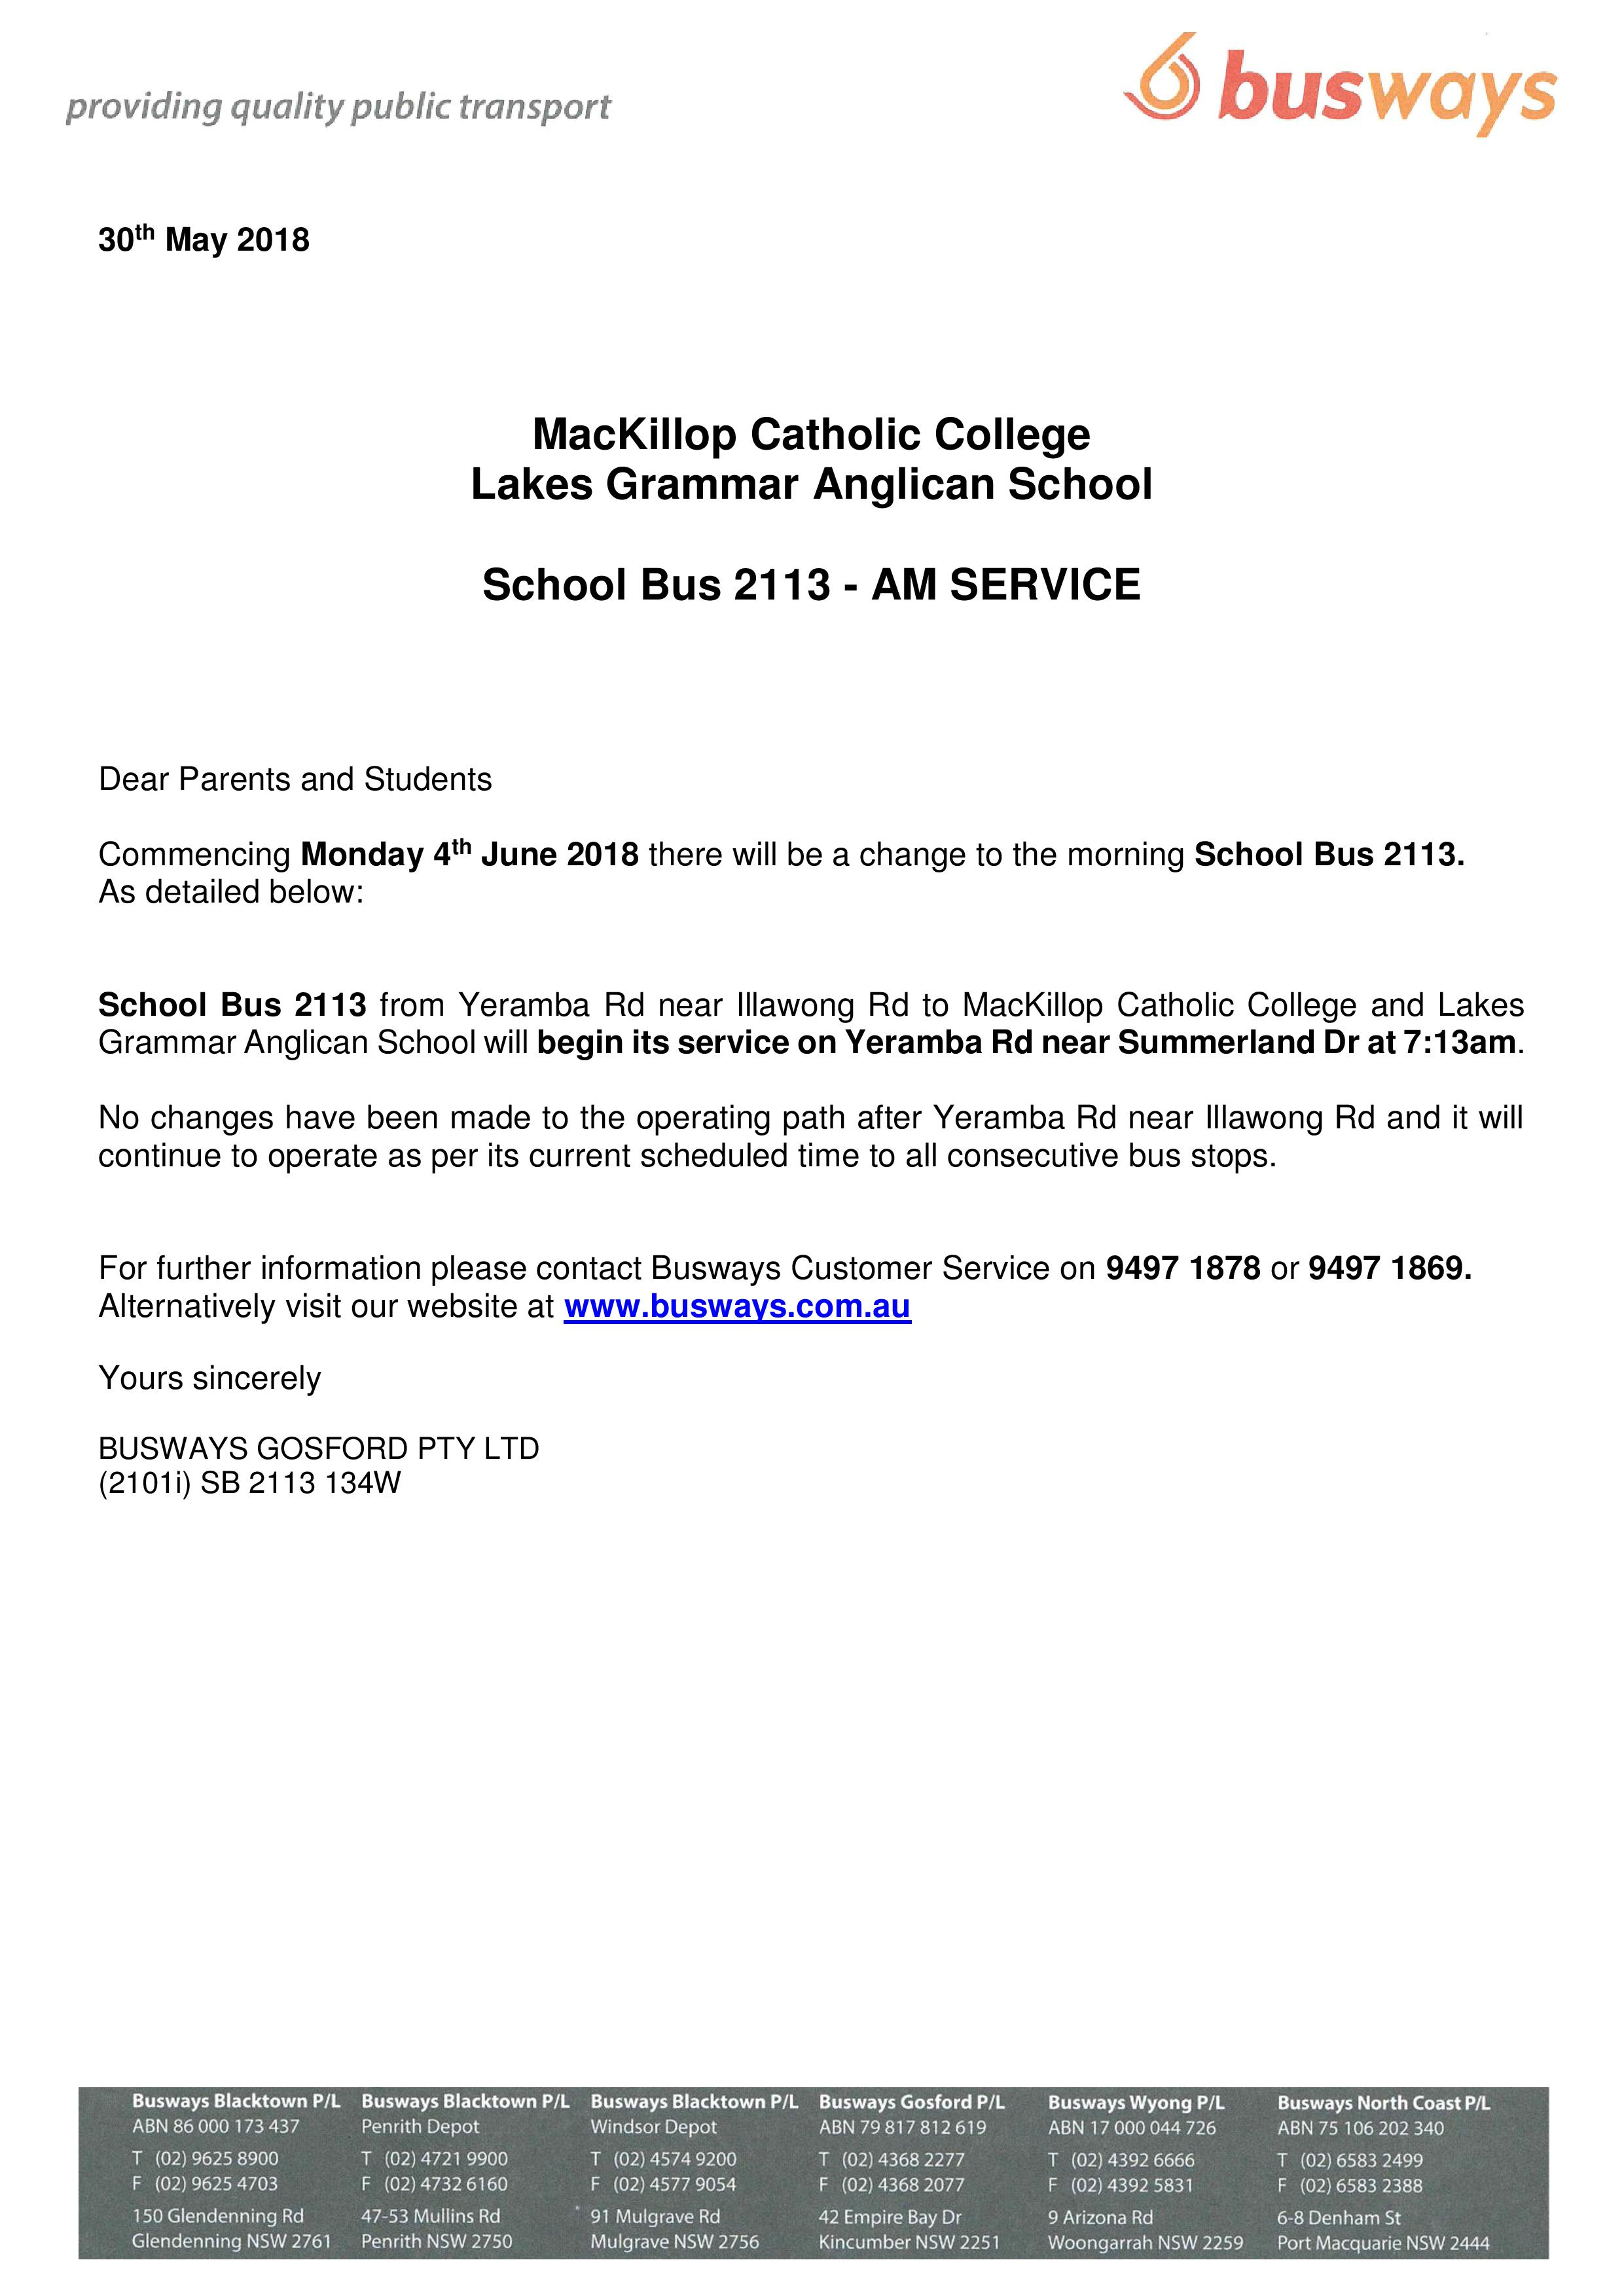 Change to morning school bus route 2113 – MacKillop Catholic